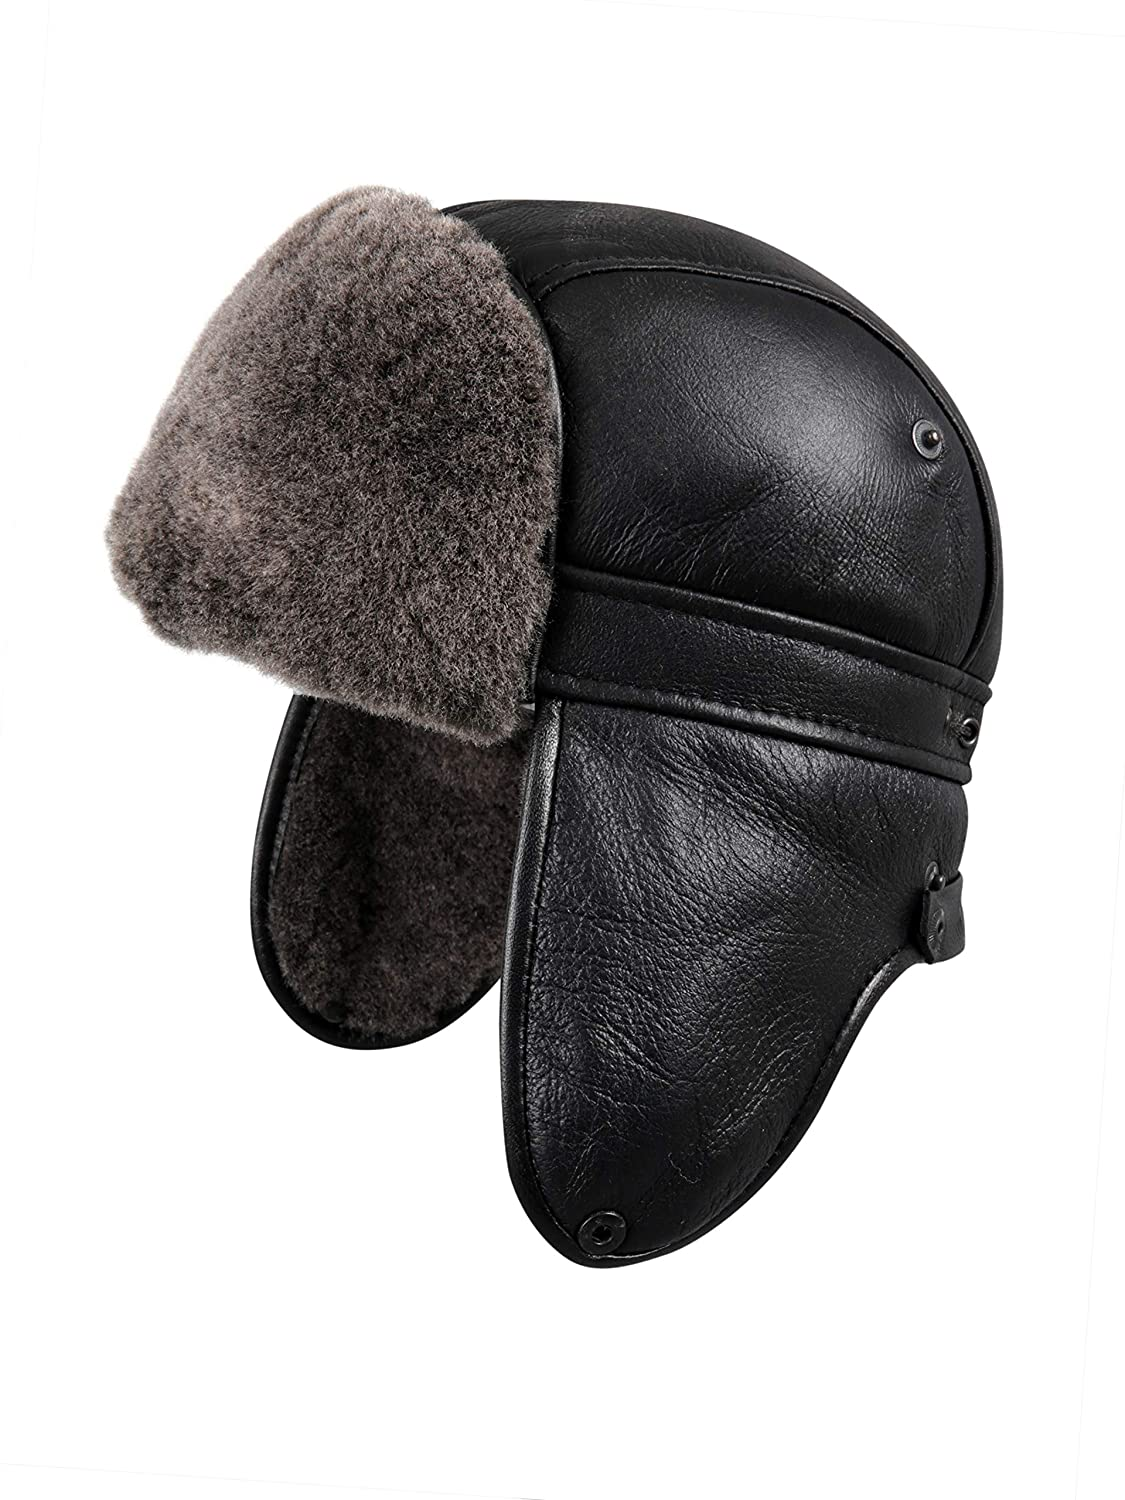 211cd85cfda Zavelio Mens Shearling Sheepskin Aviator Russian Ushanka with Snap Hat  CIT-03